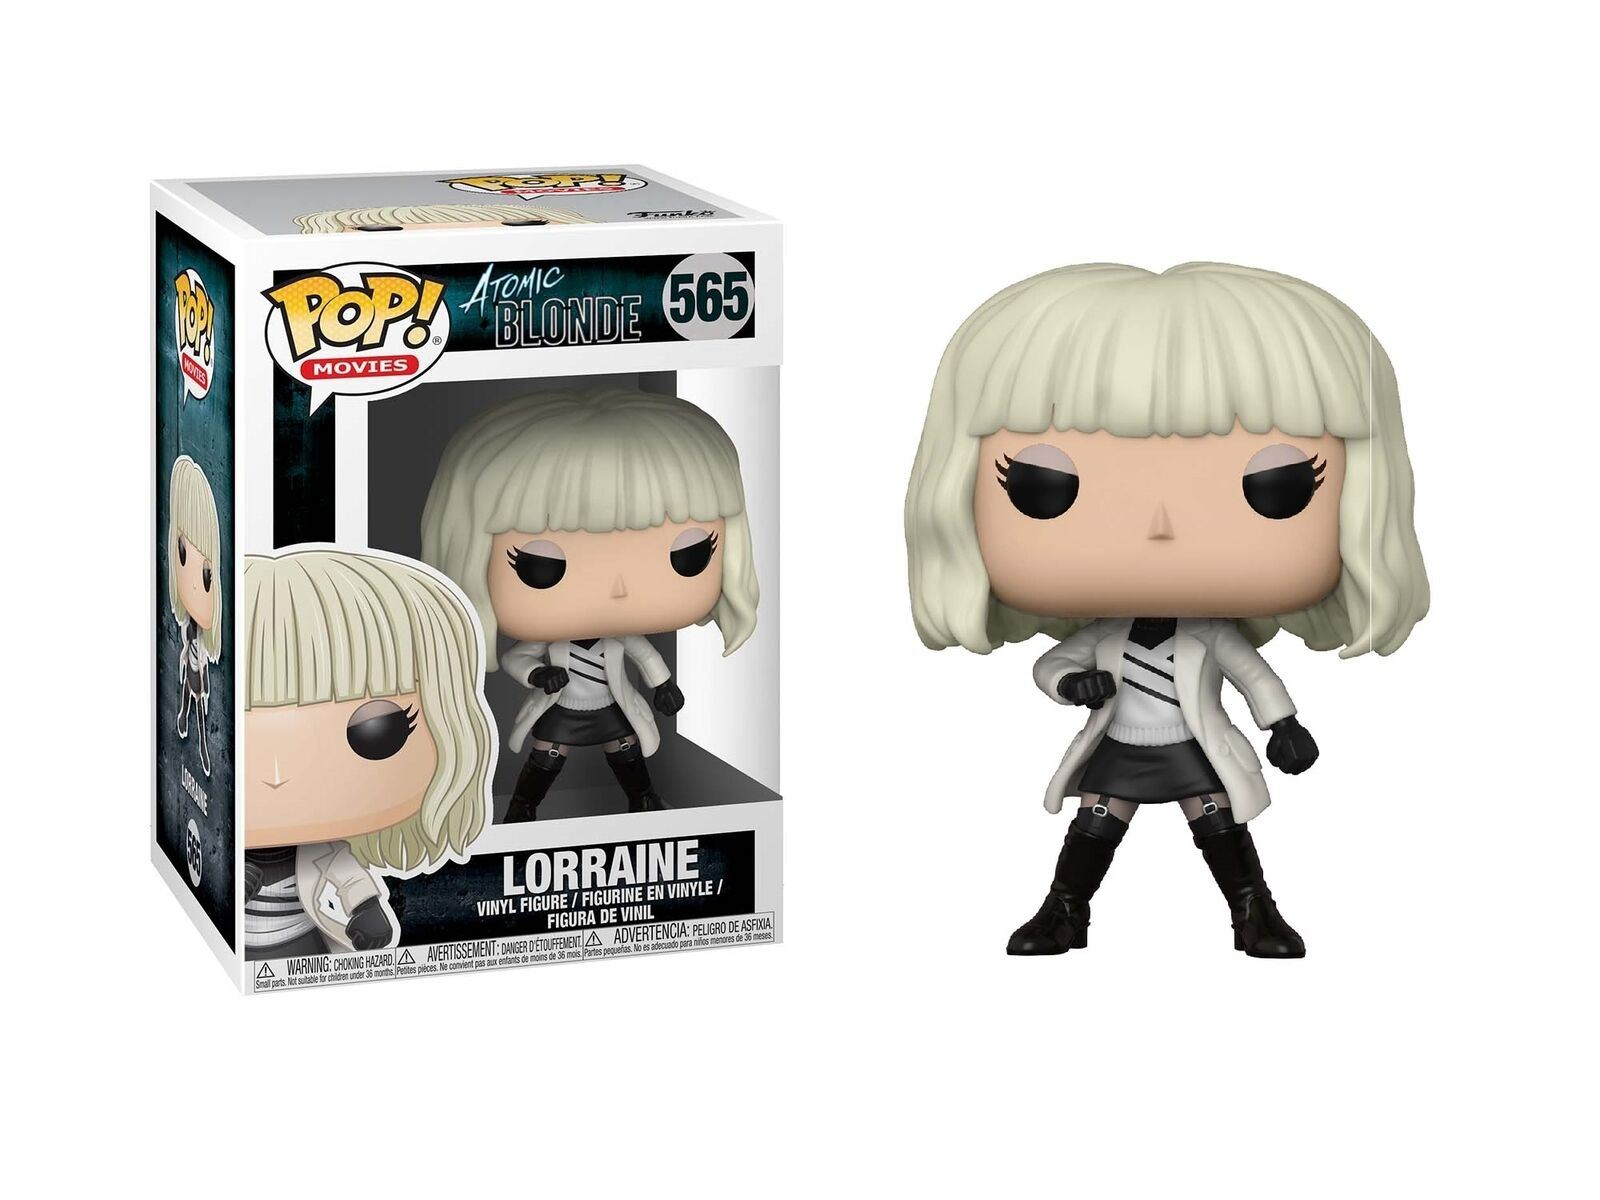 Vinyl Atomic Blonde Lorraine White Coat Figure No 565 Funko Pop